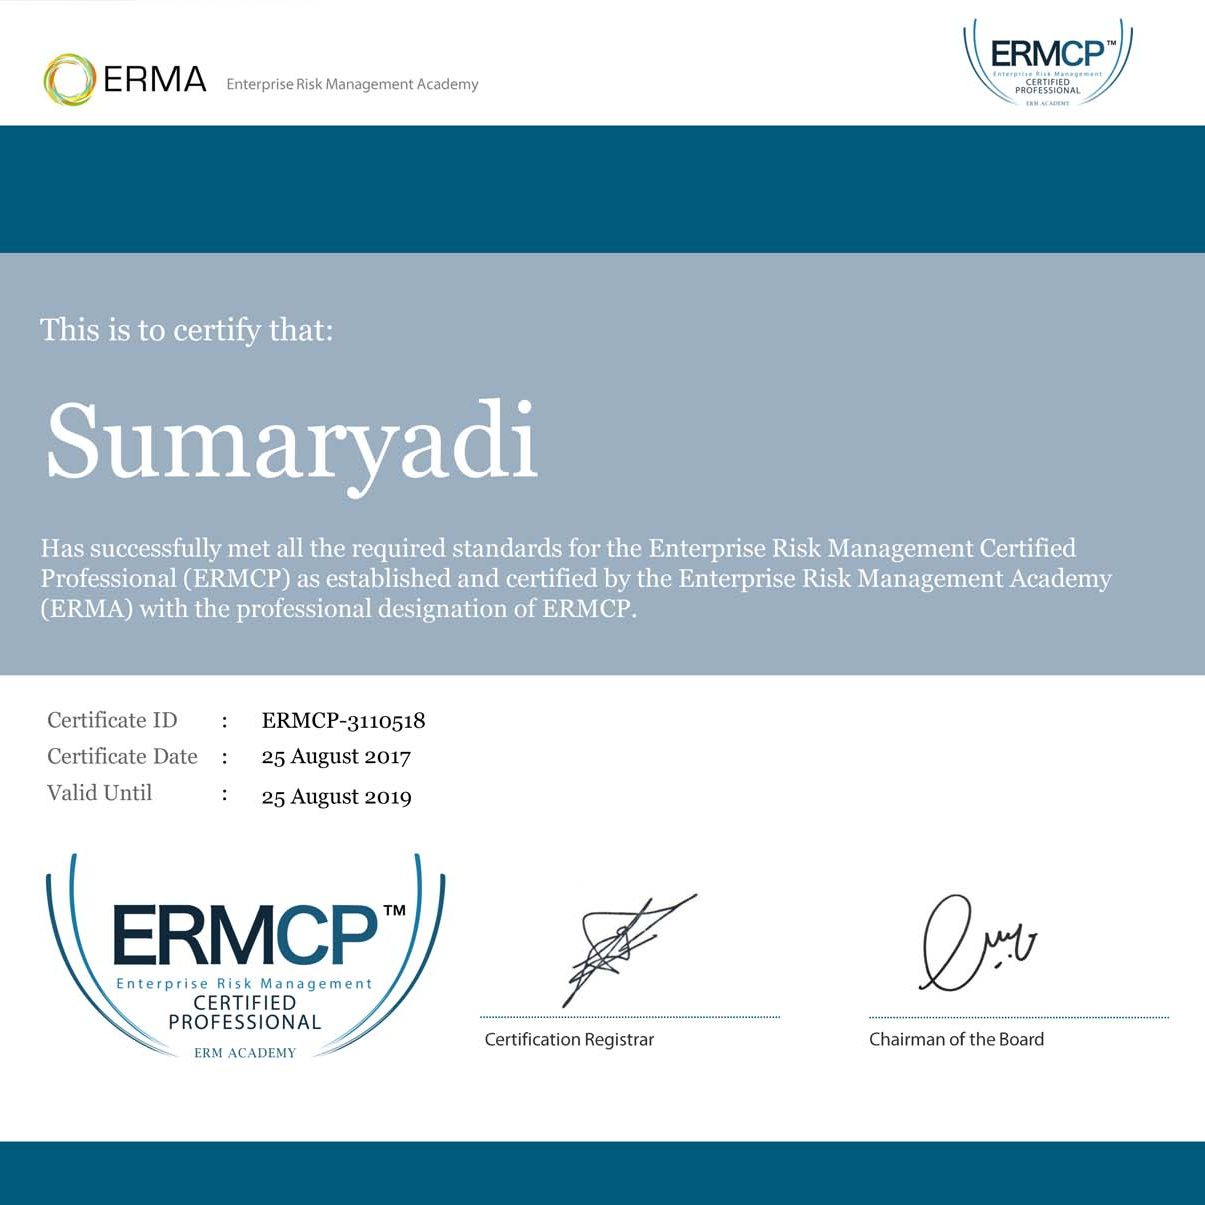 Certificate of ERMCP